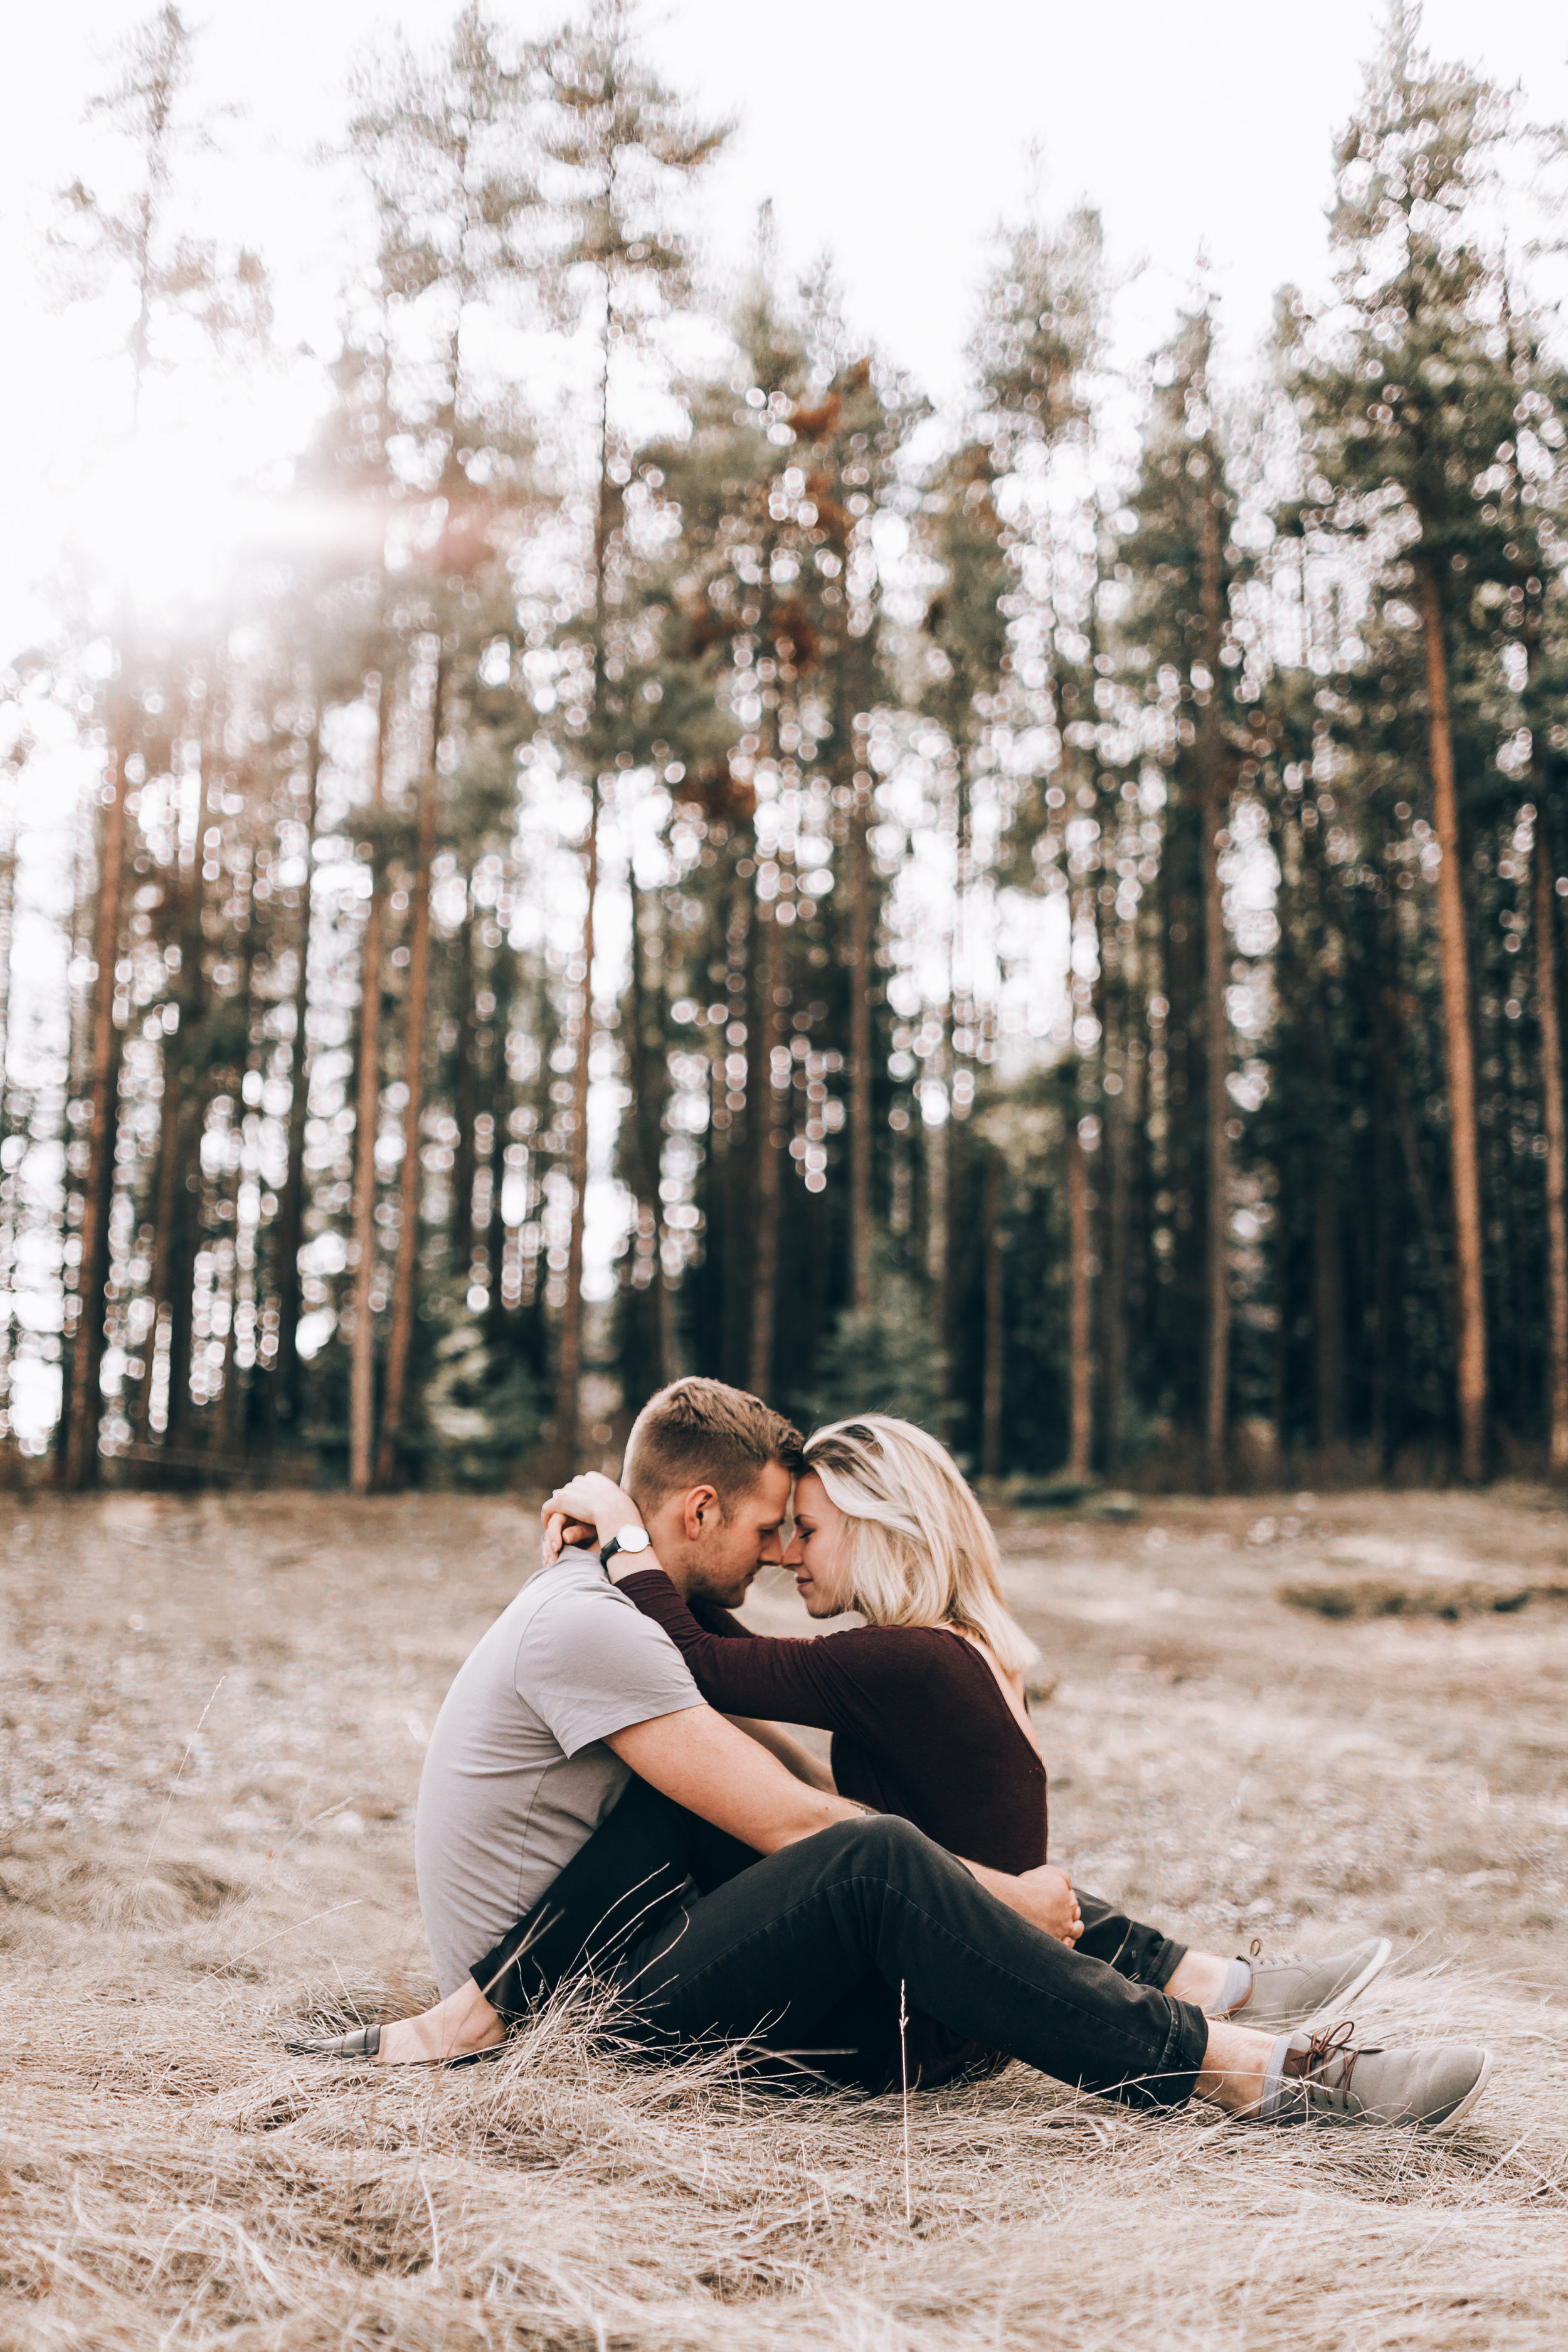 simpleperfectionsphotography.cullen+chelsey-41.jpg